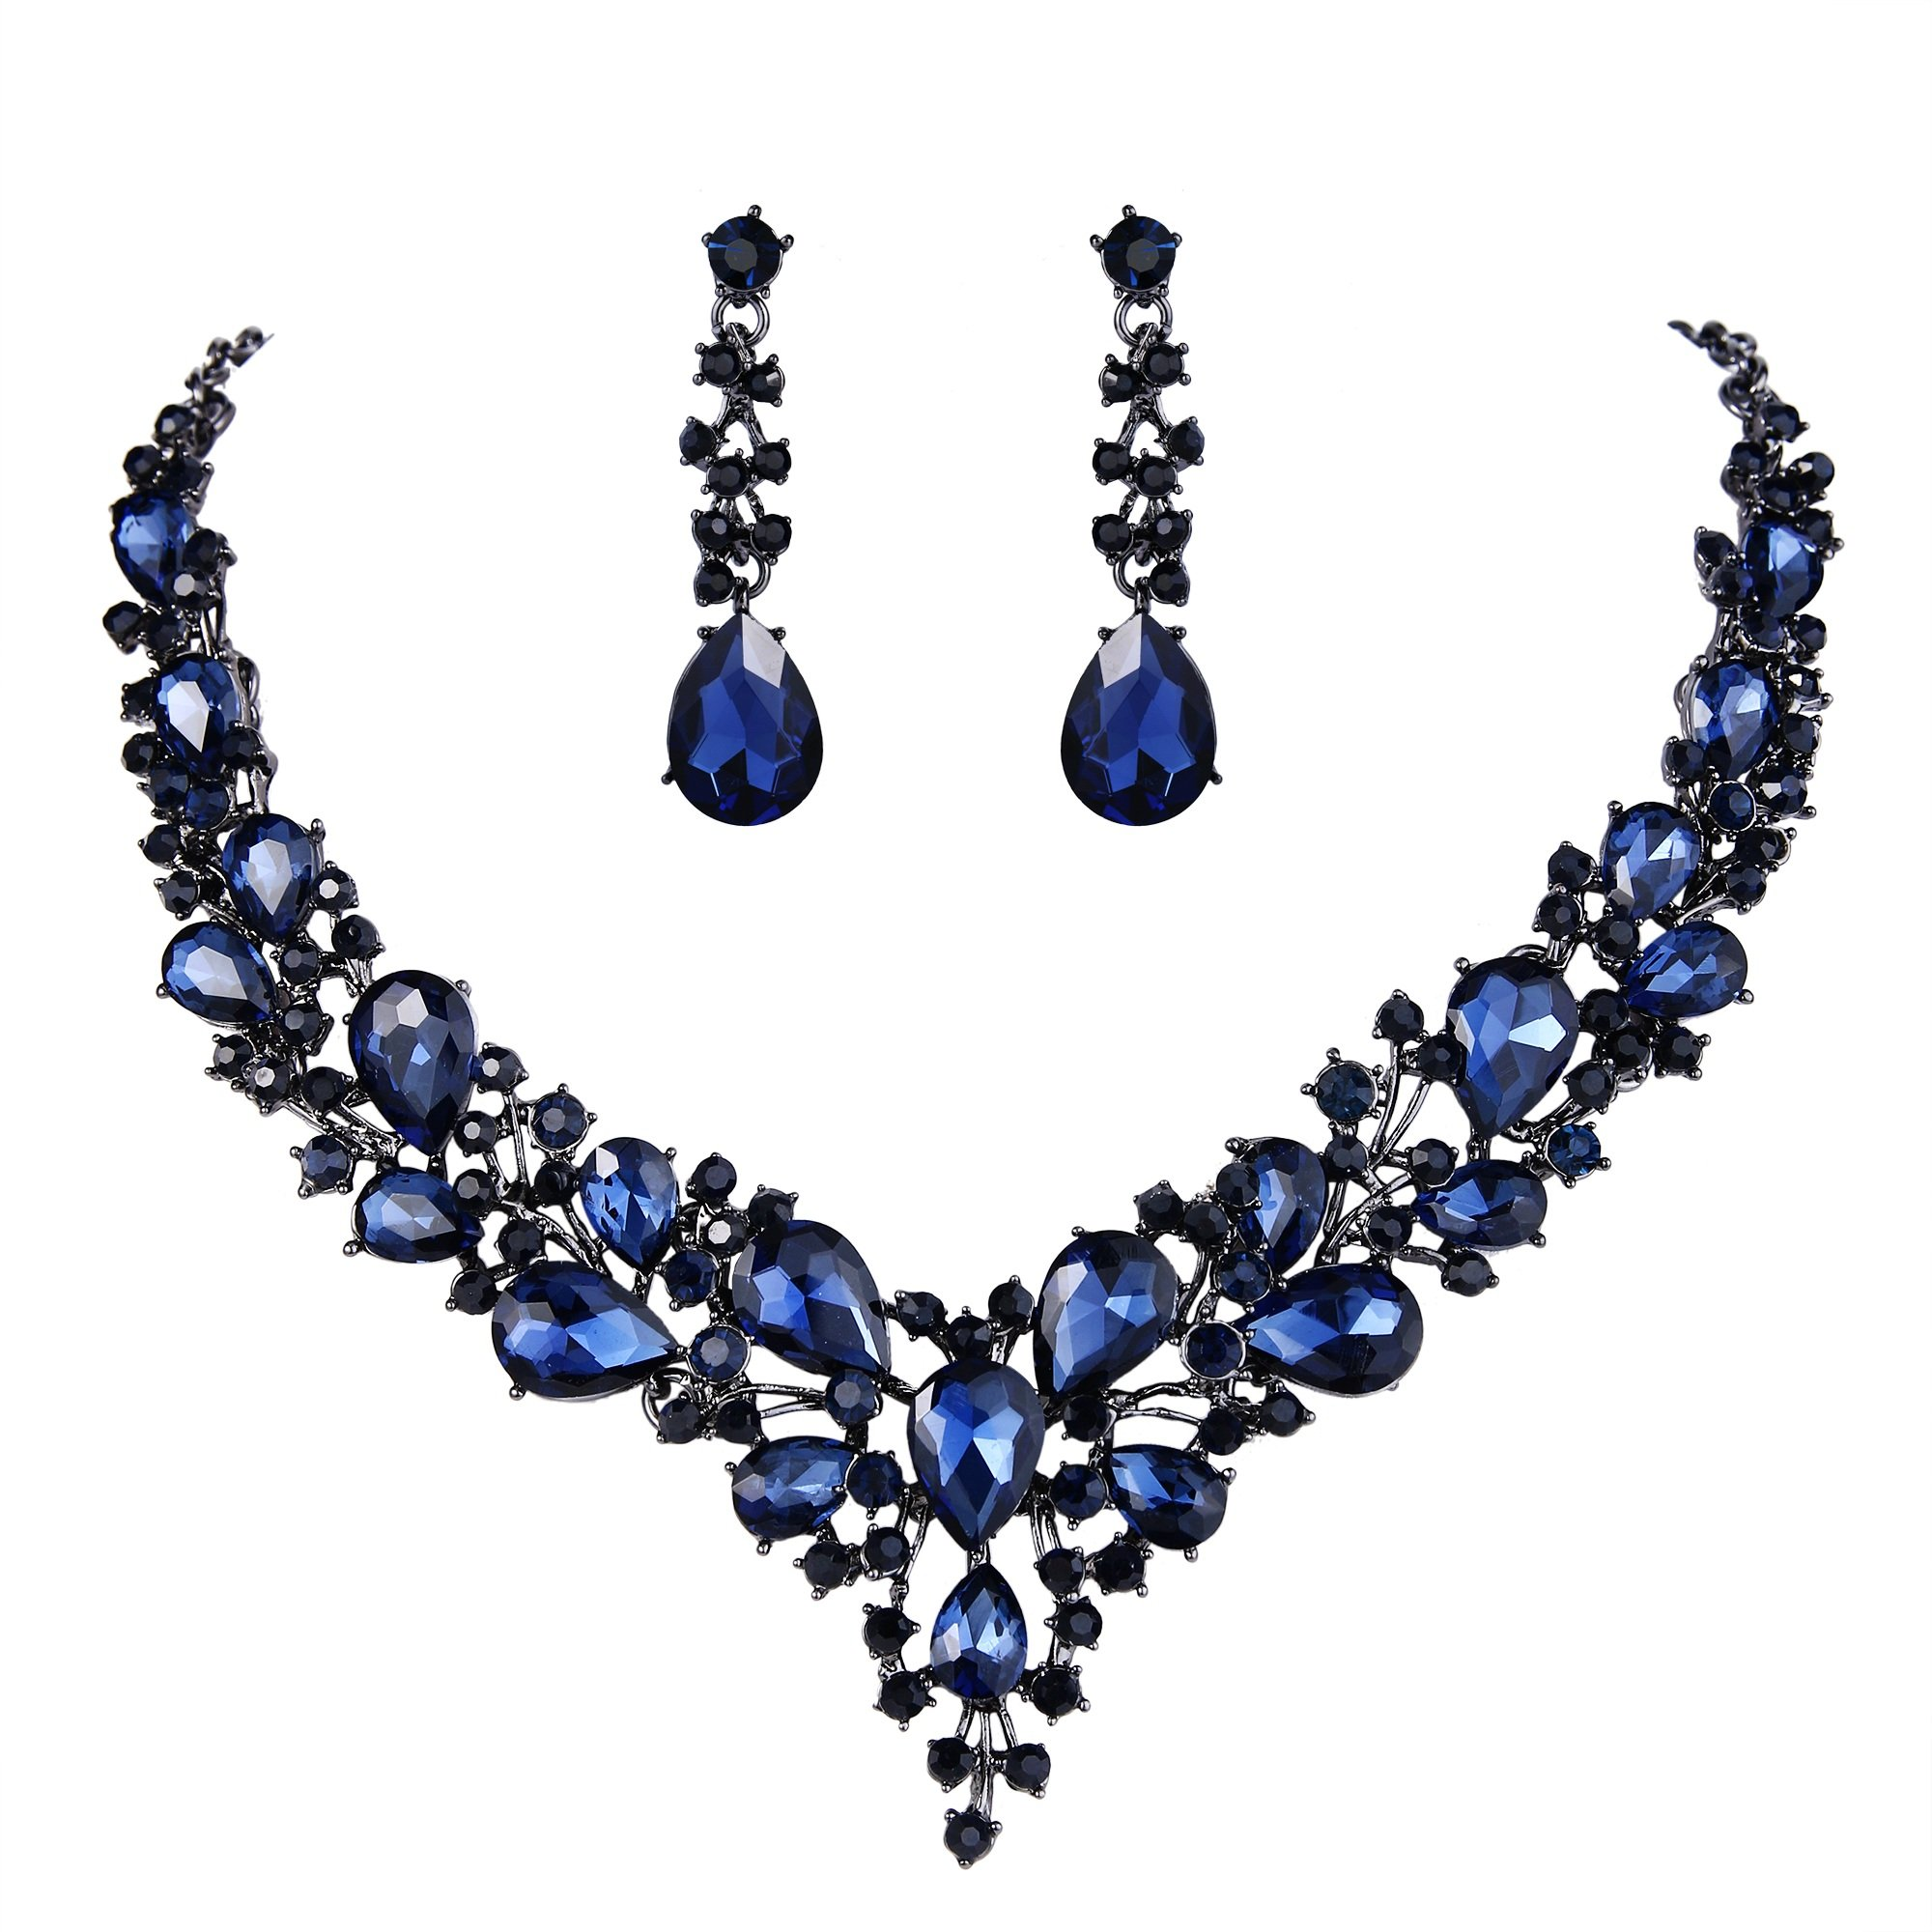 BriLove Wedding Bridal Necklace Earrings Jewelry Set for Women Austrian Crystal Teardrop Cluster Statement Necklace Dangle Earrings Set Navy Blue Sapphire Color Black-Silver-Tone by BriLove (Image #1)